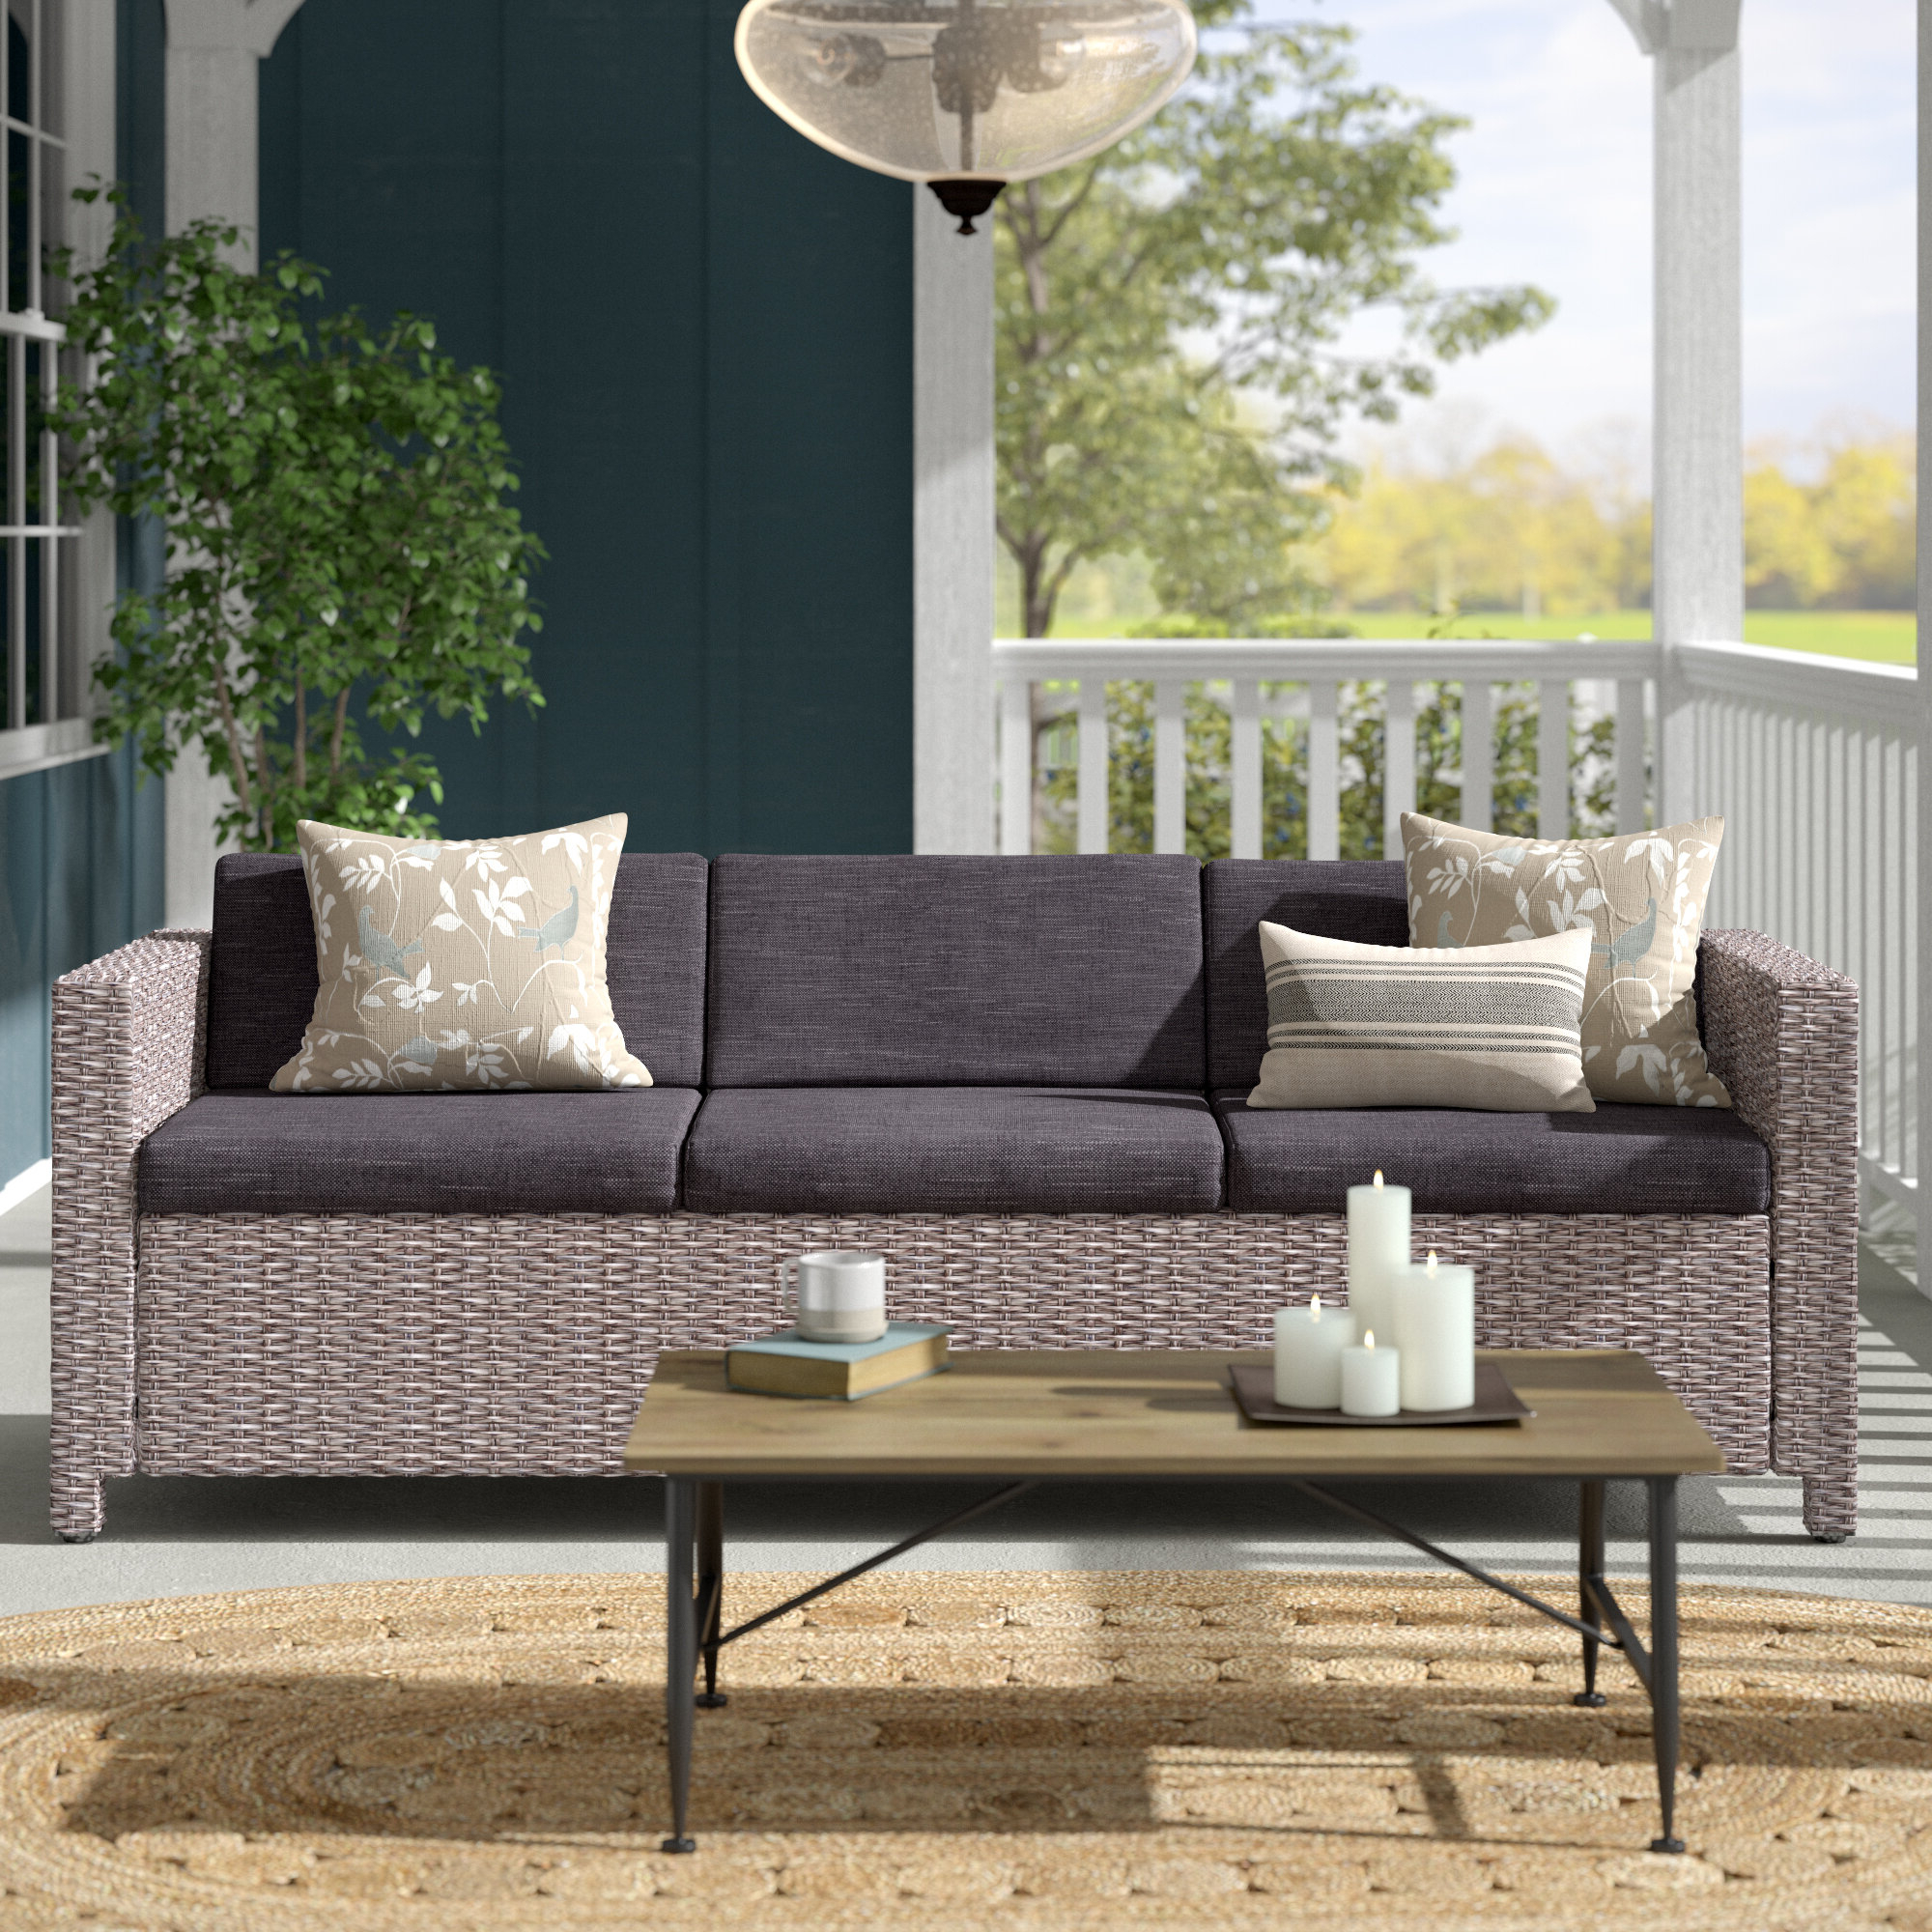 Wade Logan Furst Outdoor Patio Sofa With Cushions & Reviews Inside Latest Furst Patio Sofas With Cushion (View 6 of 20)